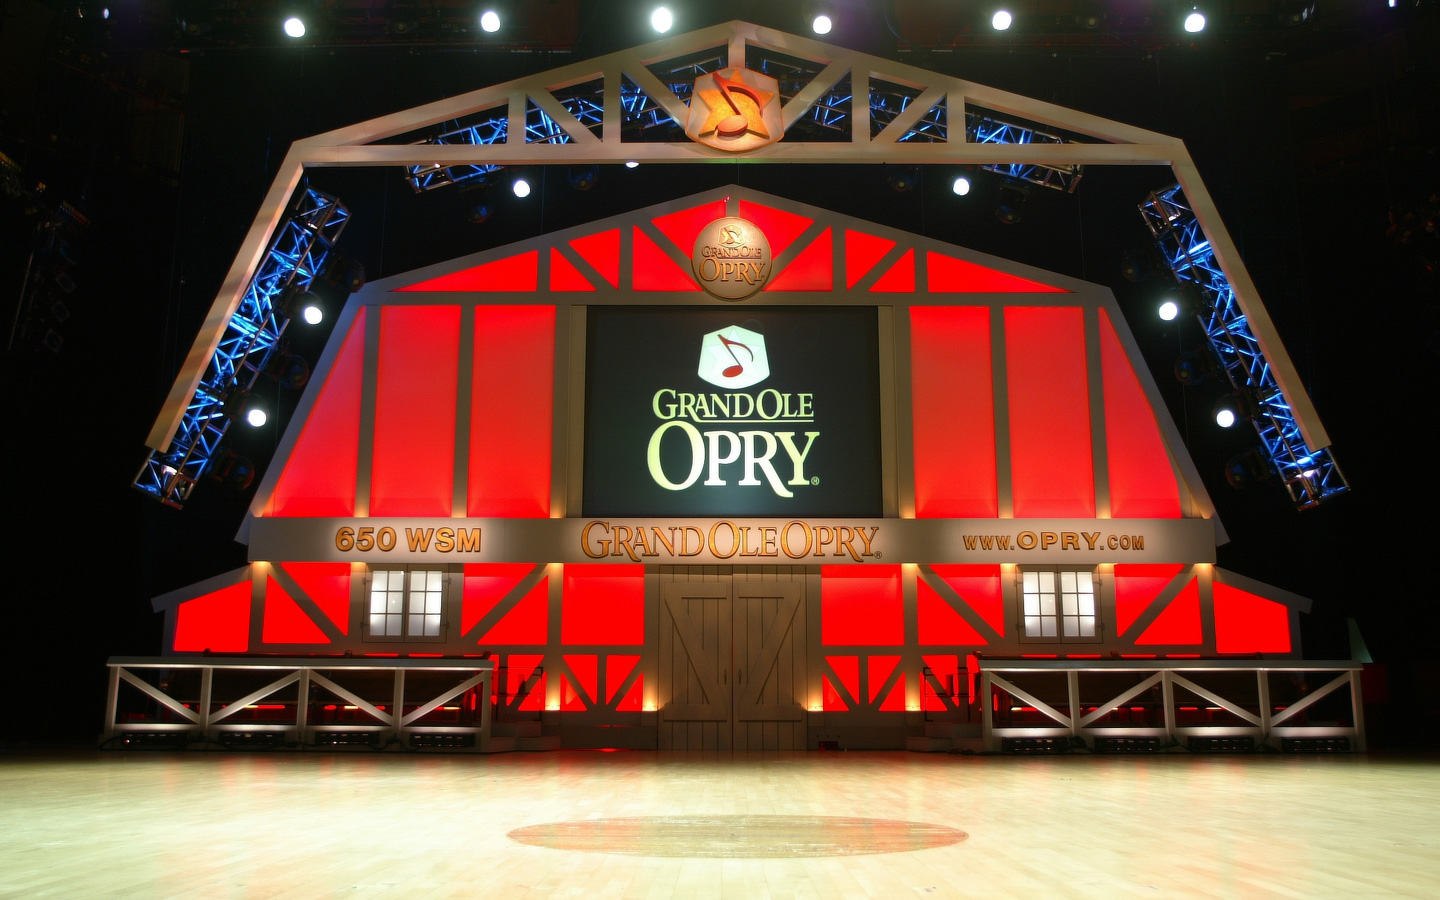 Performance and Autographs at the Grand Ole Opry